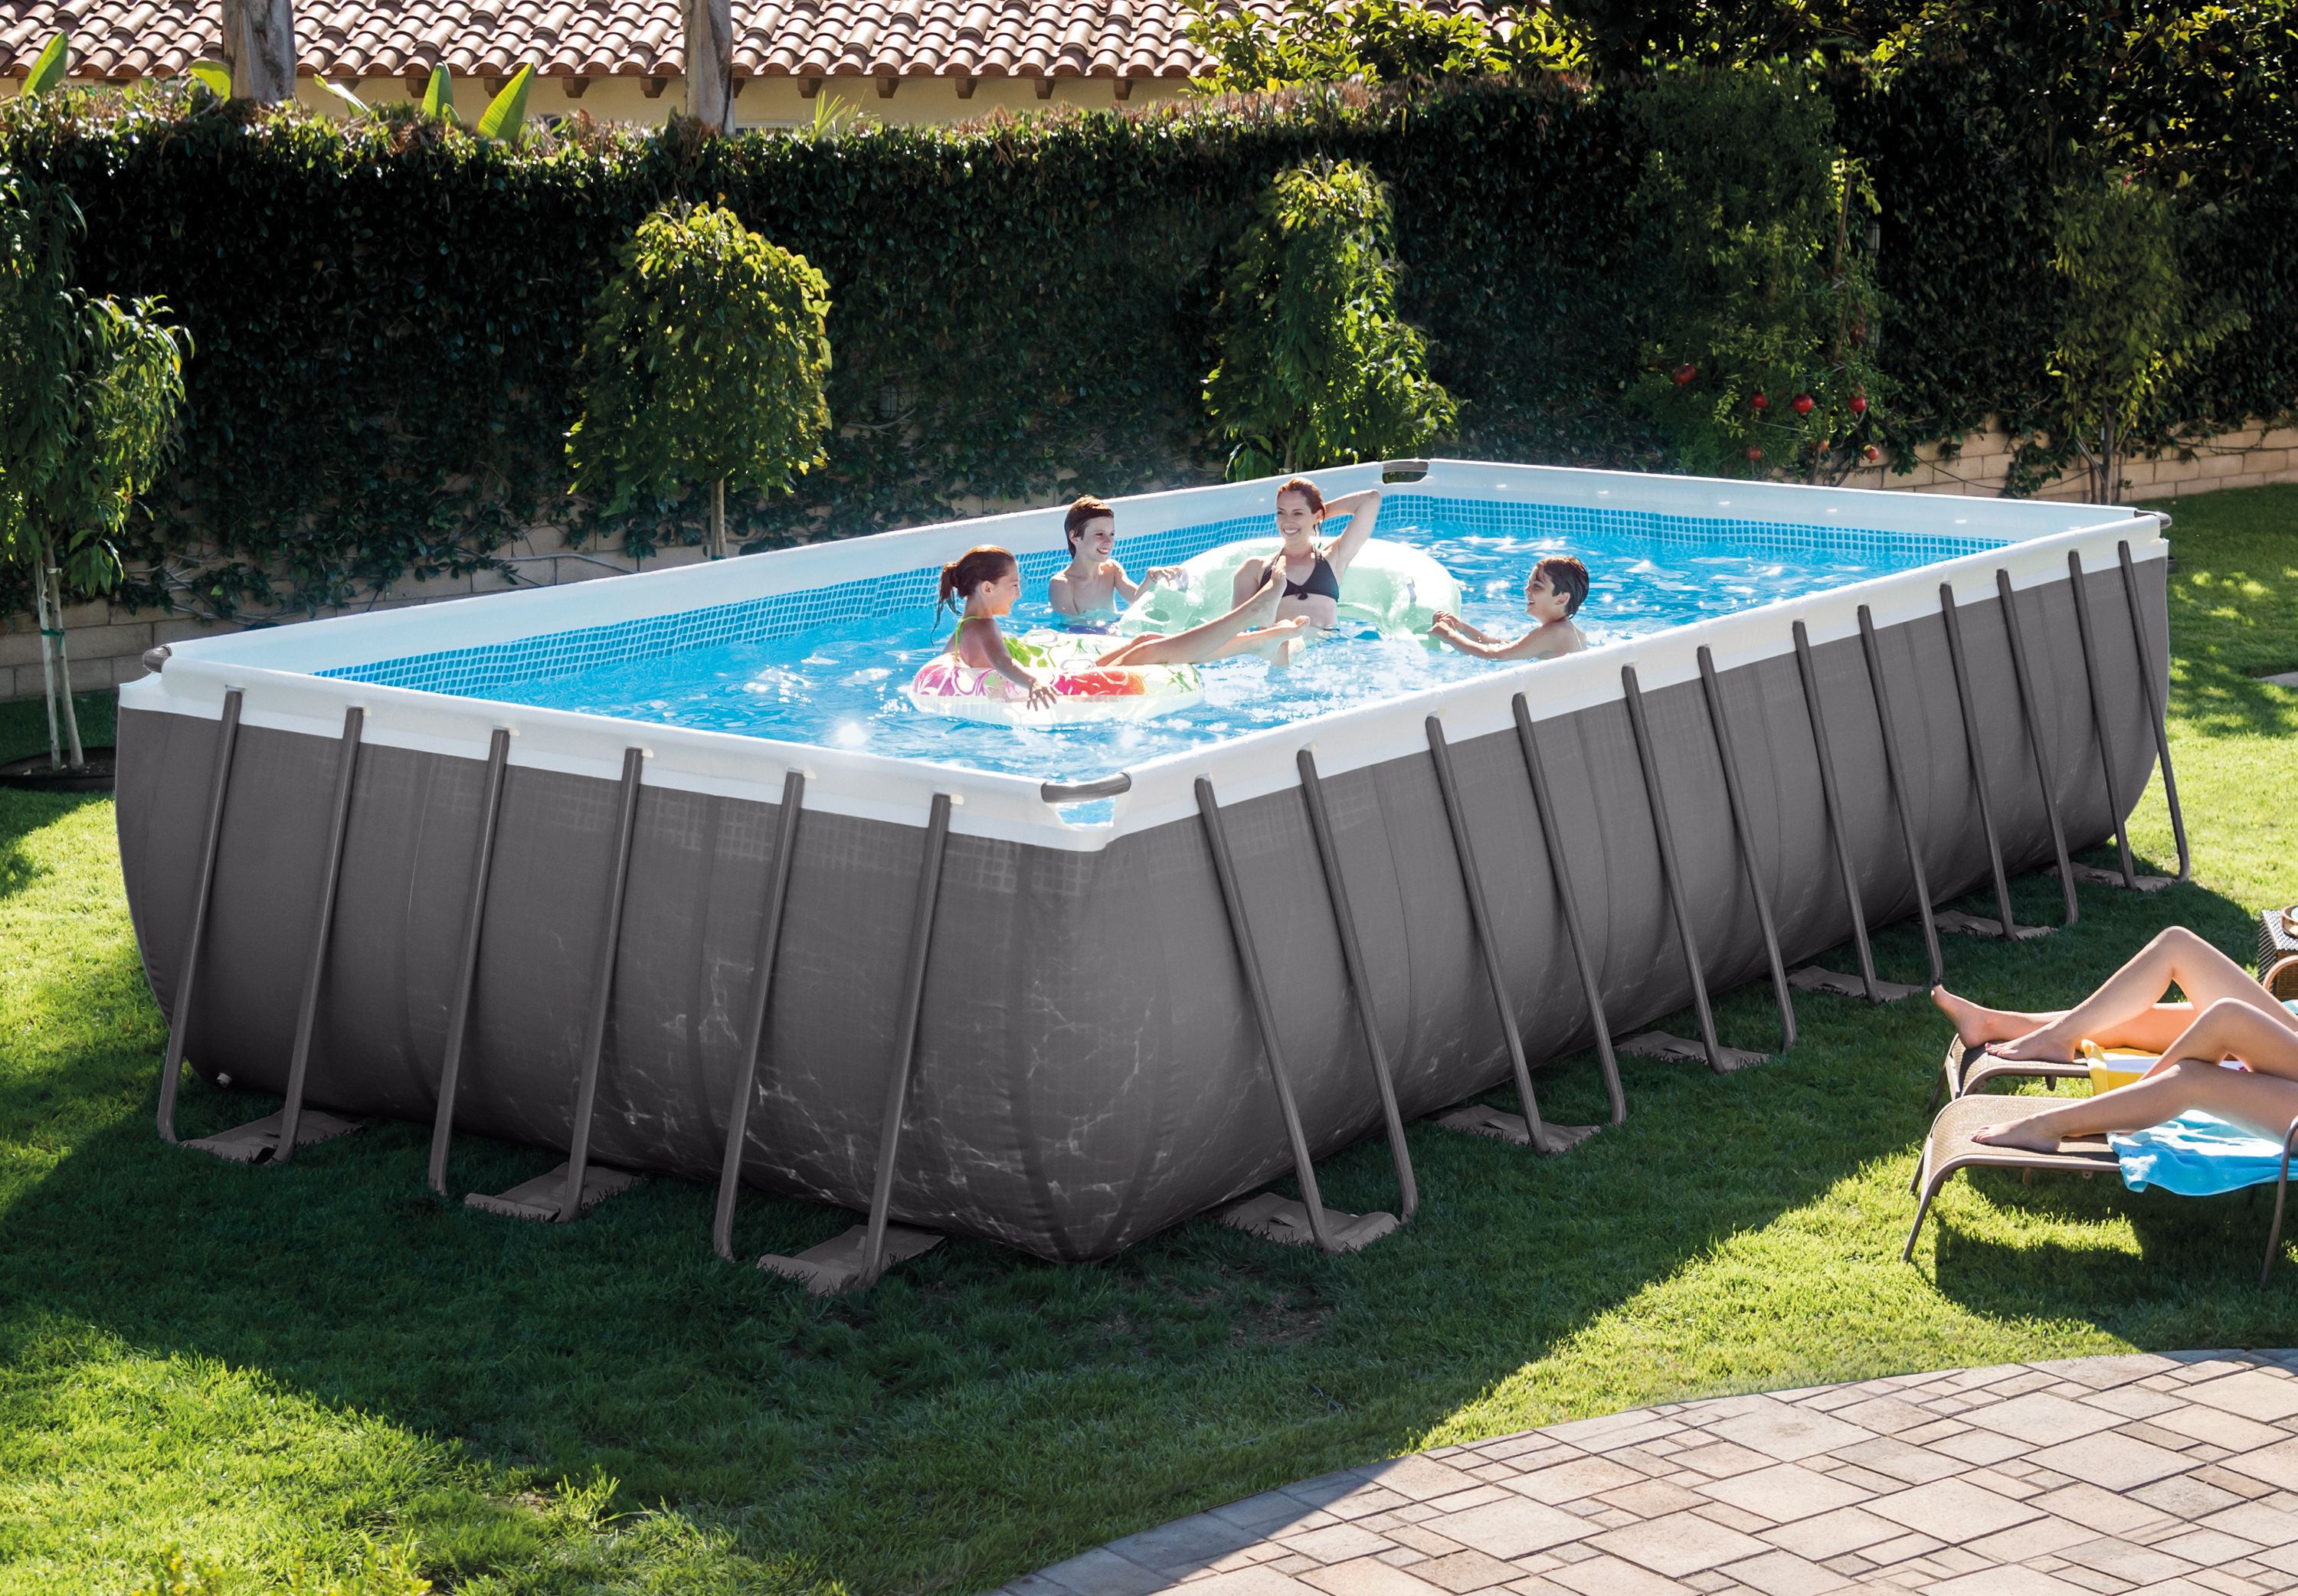 Intex Pools and Parts - ACTIVE FIRE & WATER